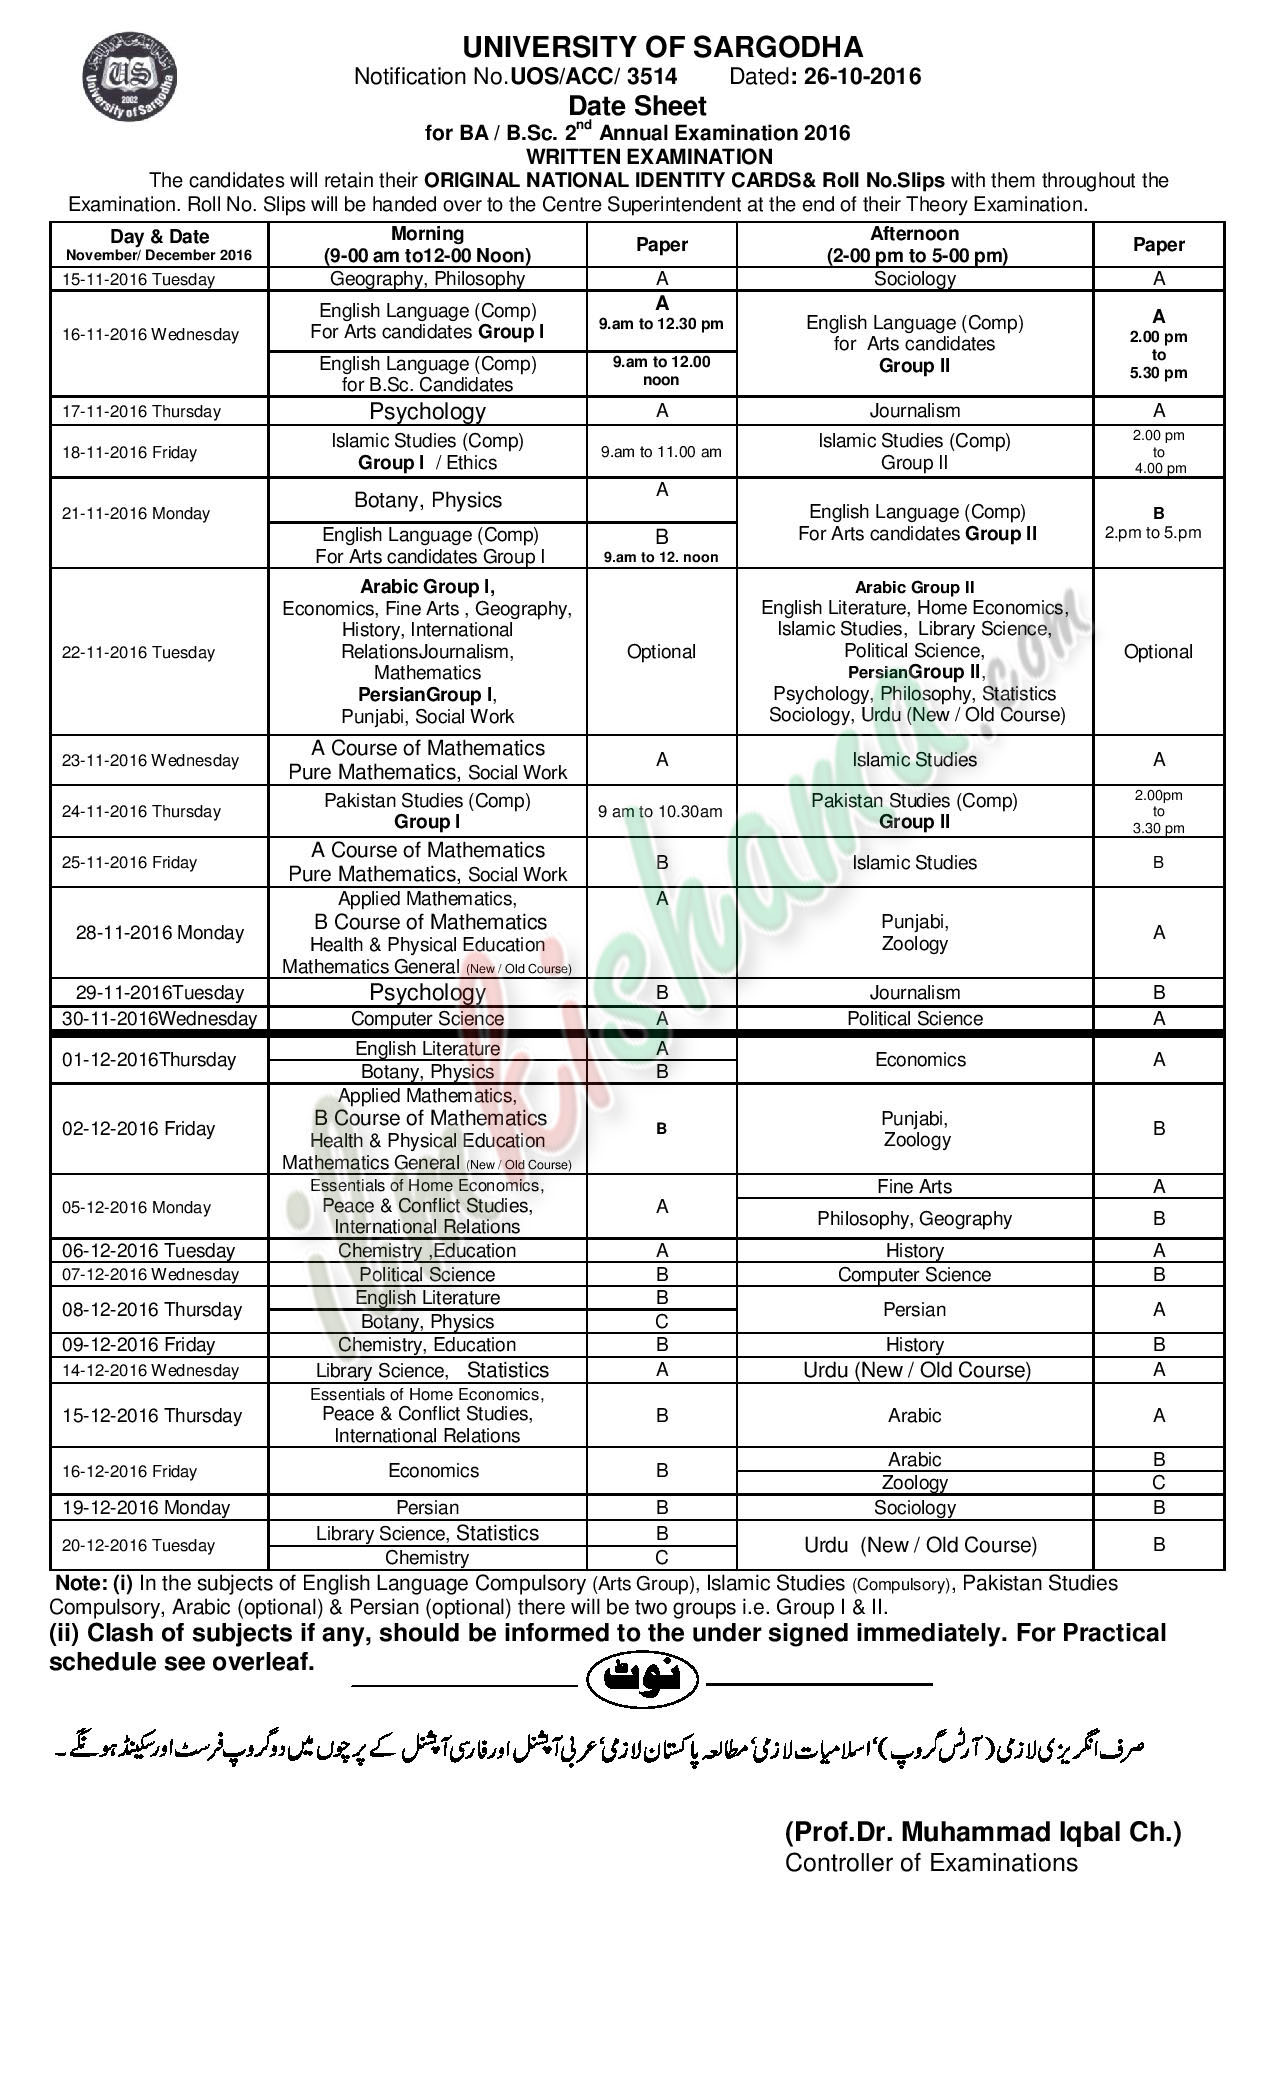 date-sheet-of-ba-bsc-2nd-2016-page-001